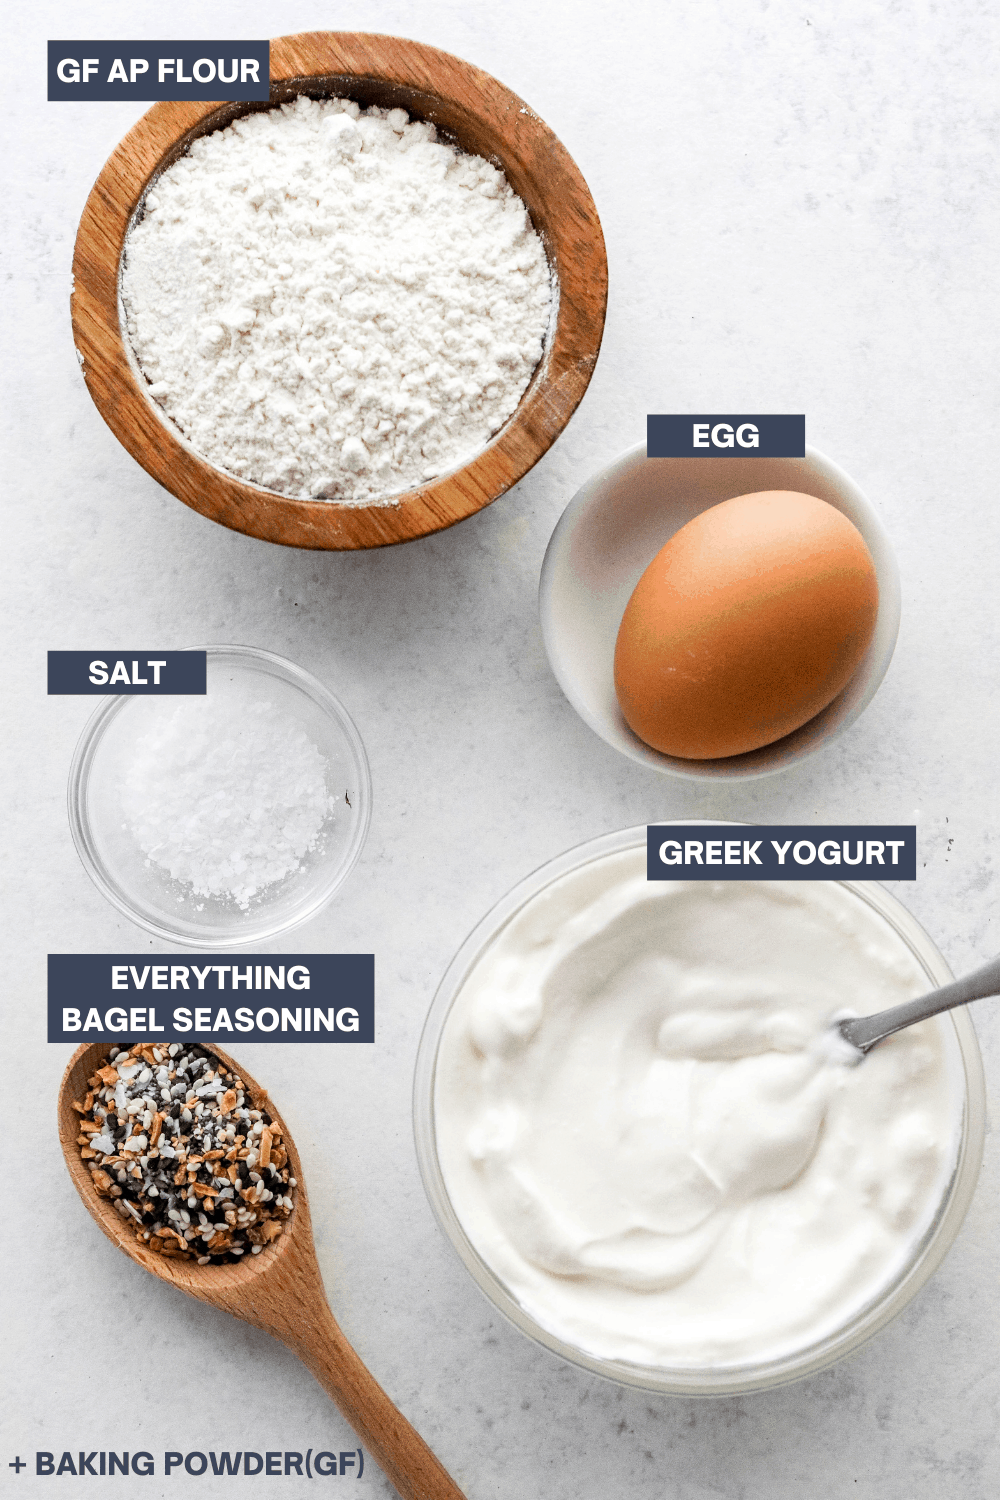 Round wooden bowl filled with white flour, brown egg, bowl of salt, bowl of Greek yogurt and a wooden spoon filled with bagel seasoning on a white board with blue specs in it.